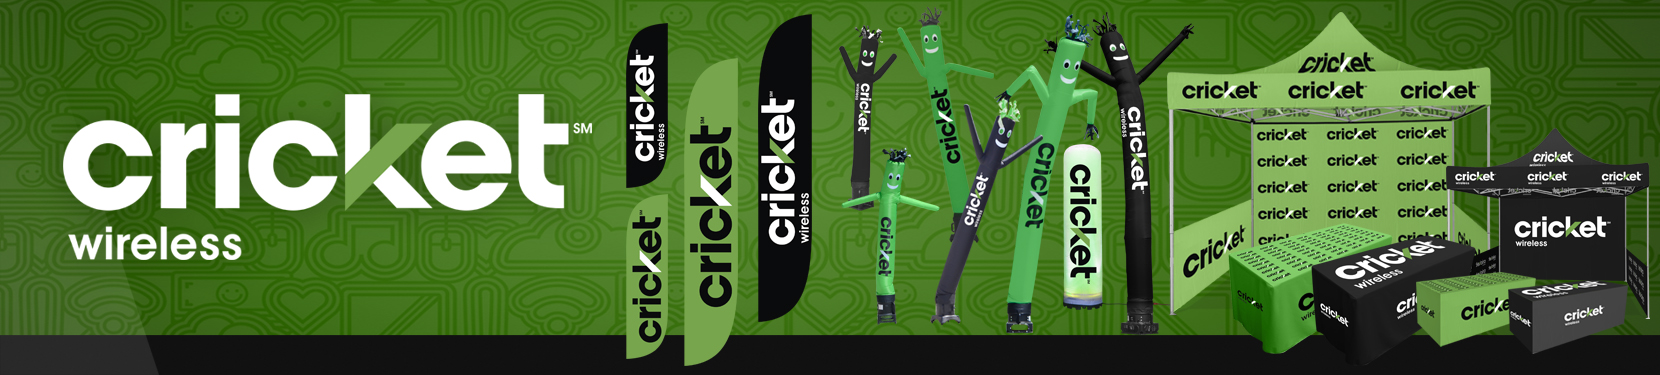 cricket-air-dancers-feather-flags-pop-up-canopy-tents-and-grand-opening-kits-a.jpg